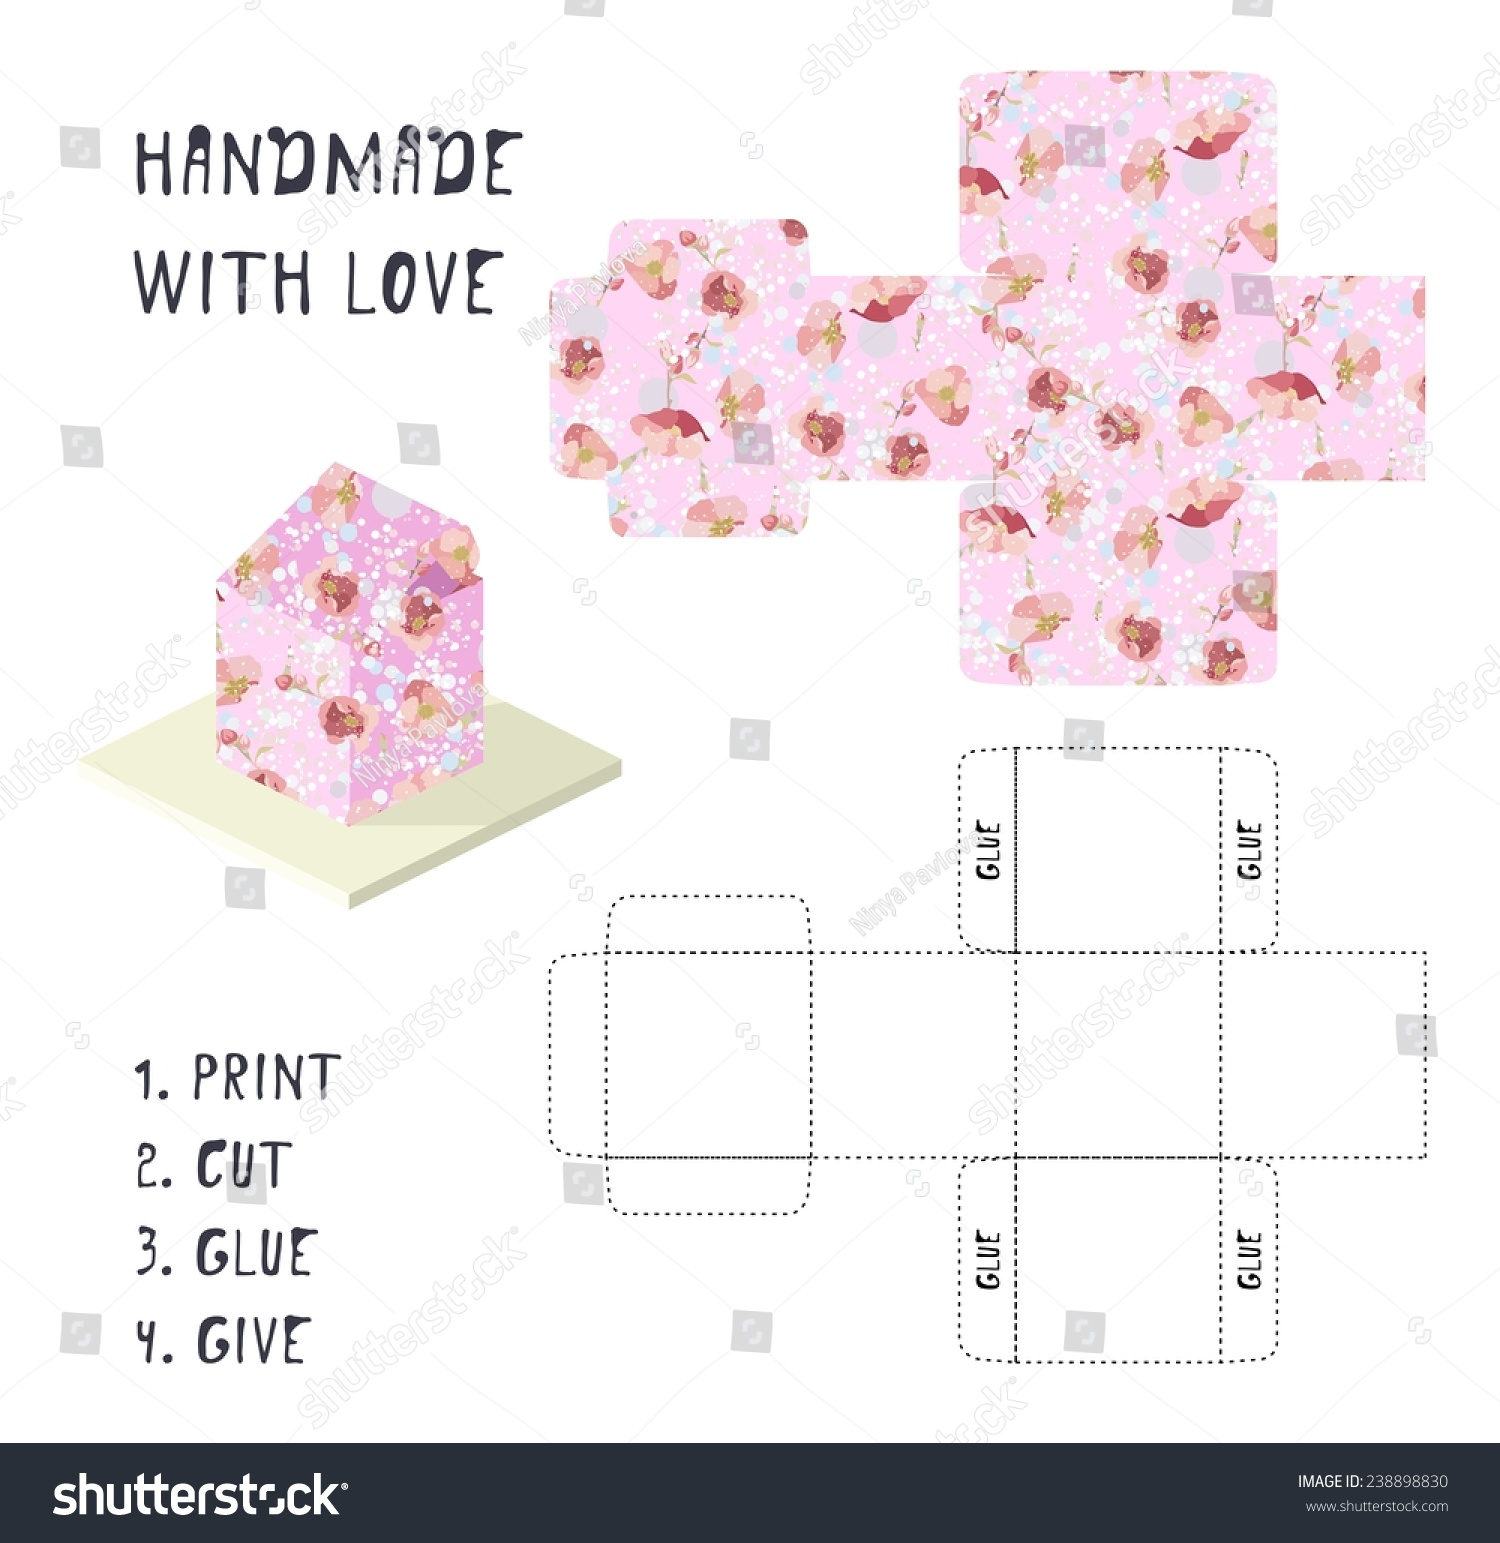 Do yourself vector pink gift box stock vector 238898830 shutterstock do it yourself vector pink gift box template with flower pattern handmade with love solutioingenieria Images